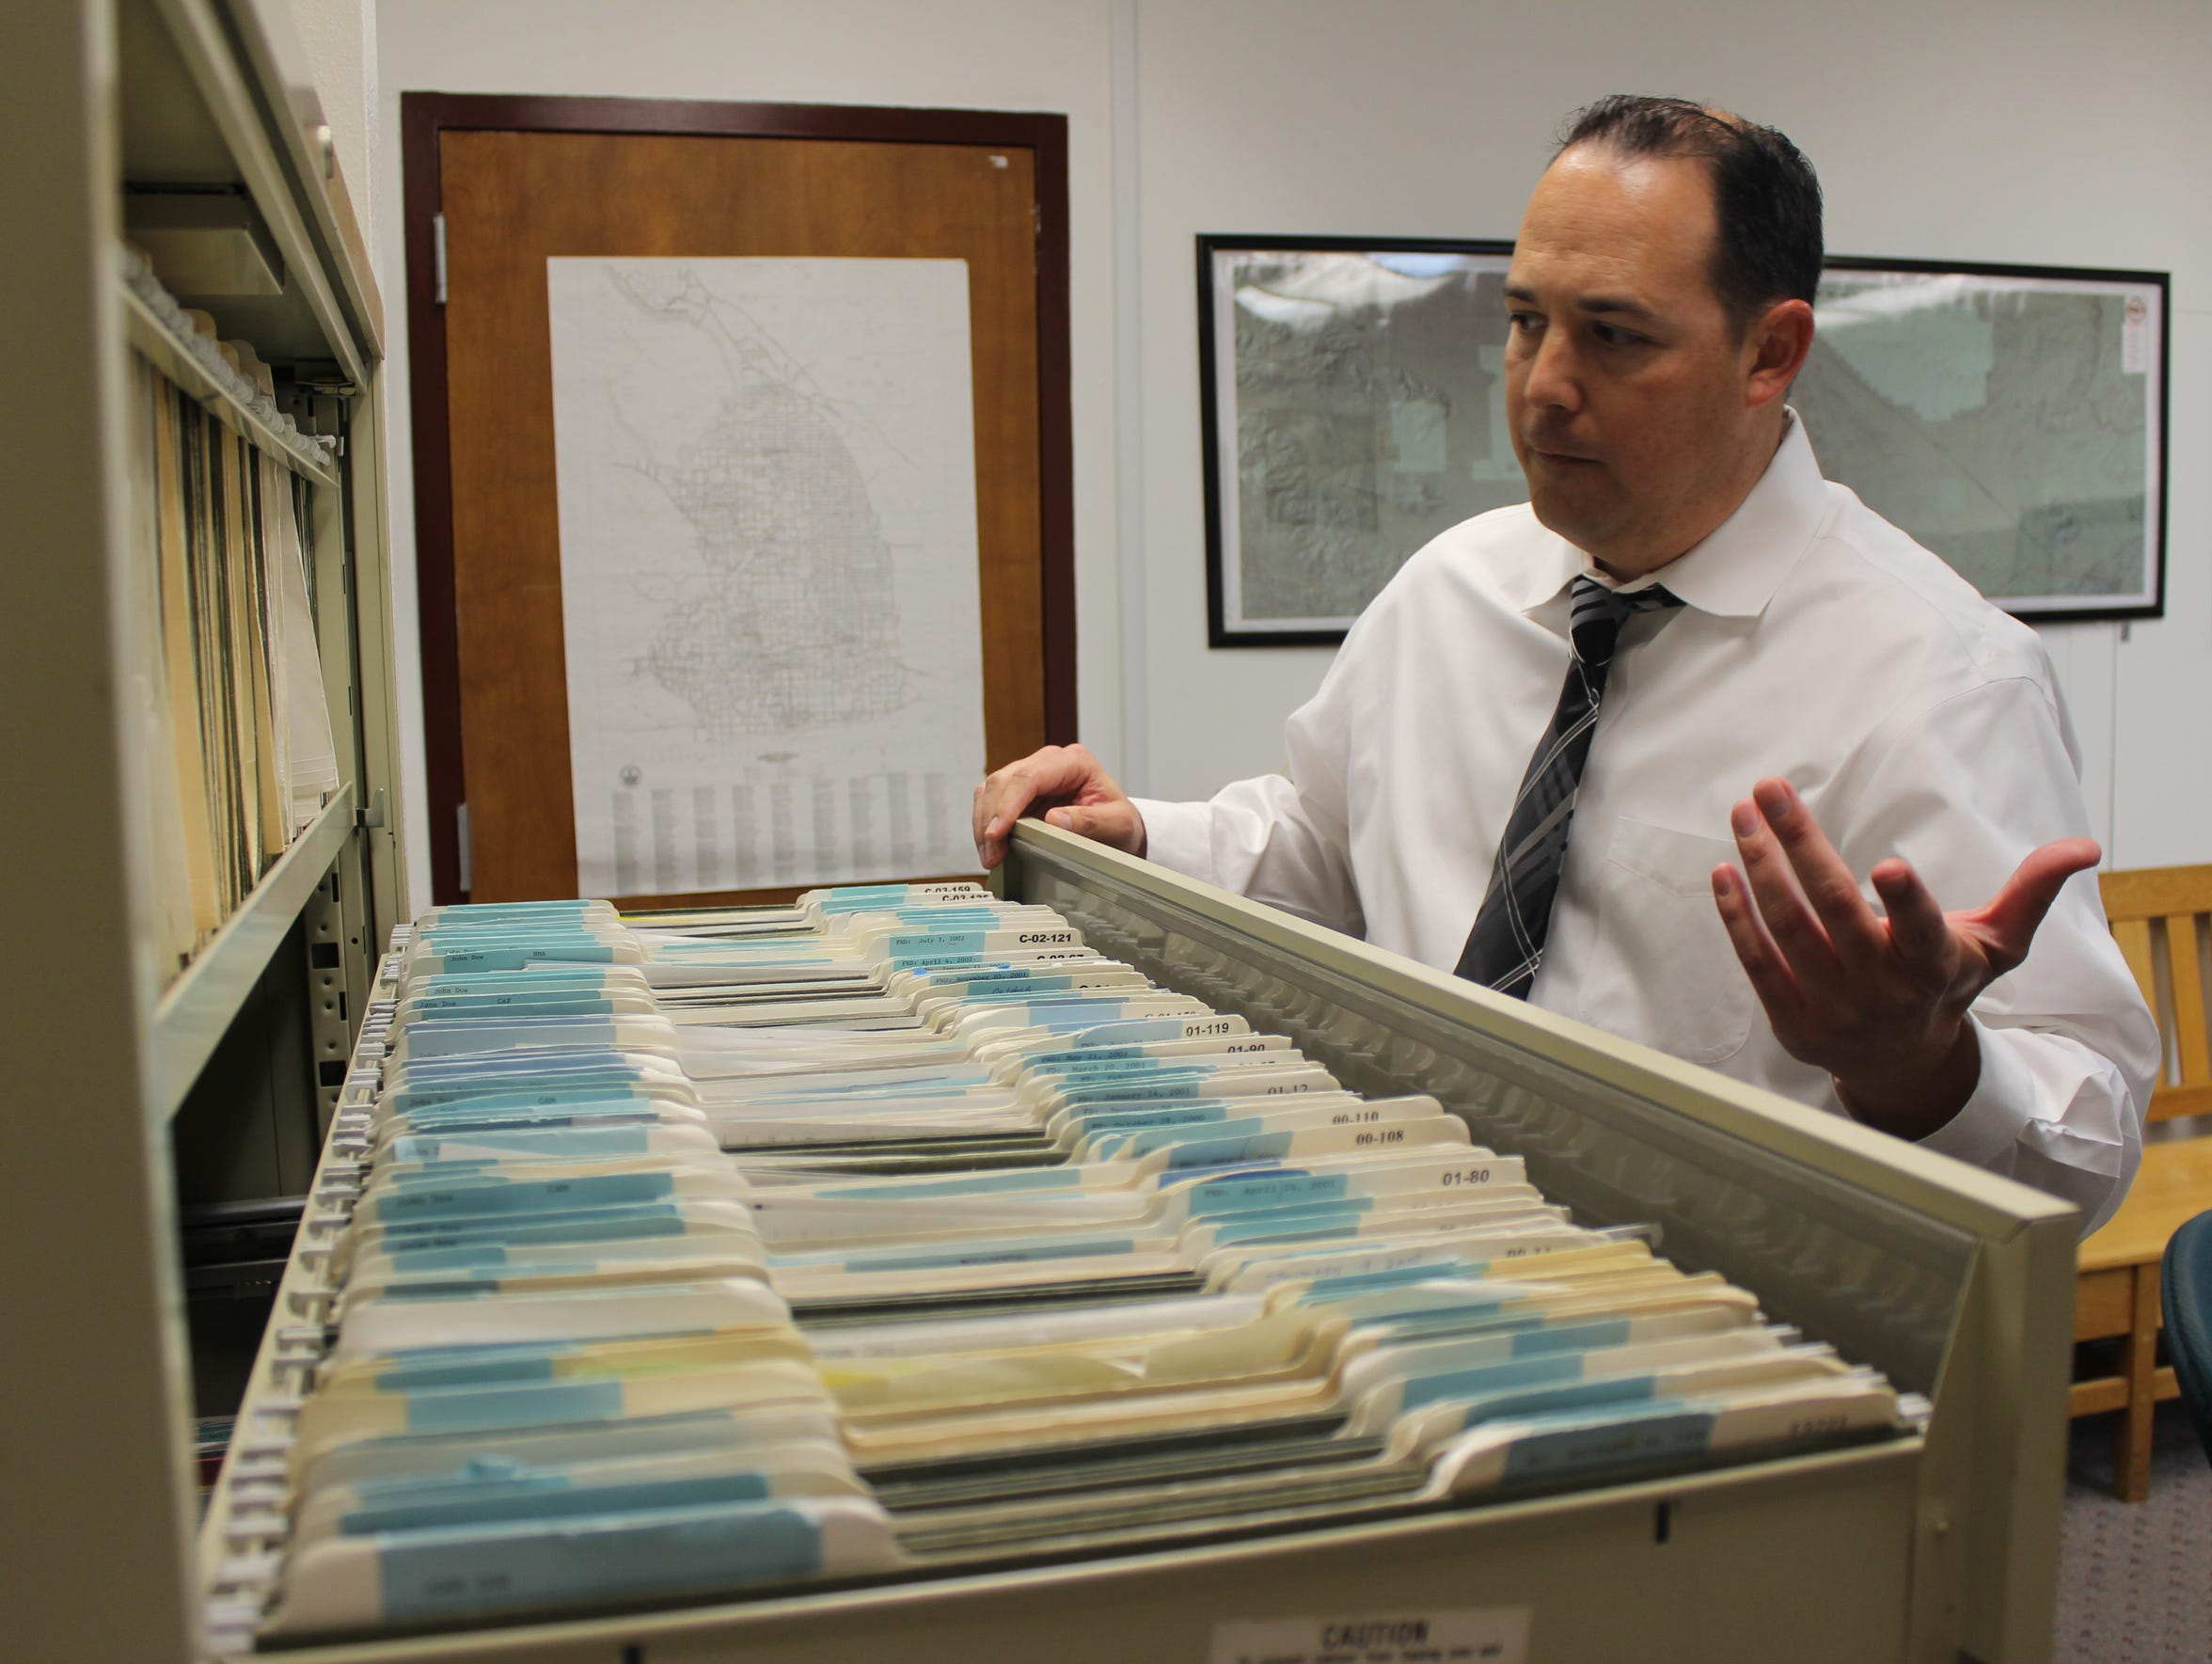 Sgt. Eric Frazier, who heads the Imperial County Coroner's